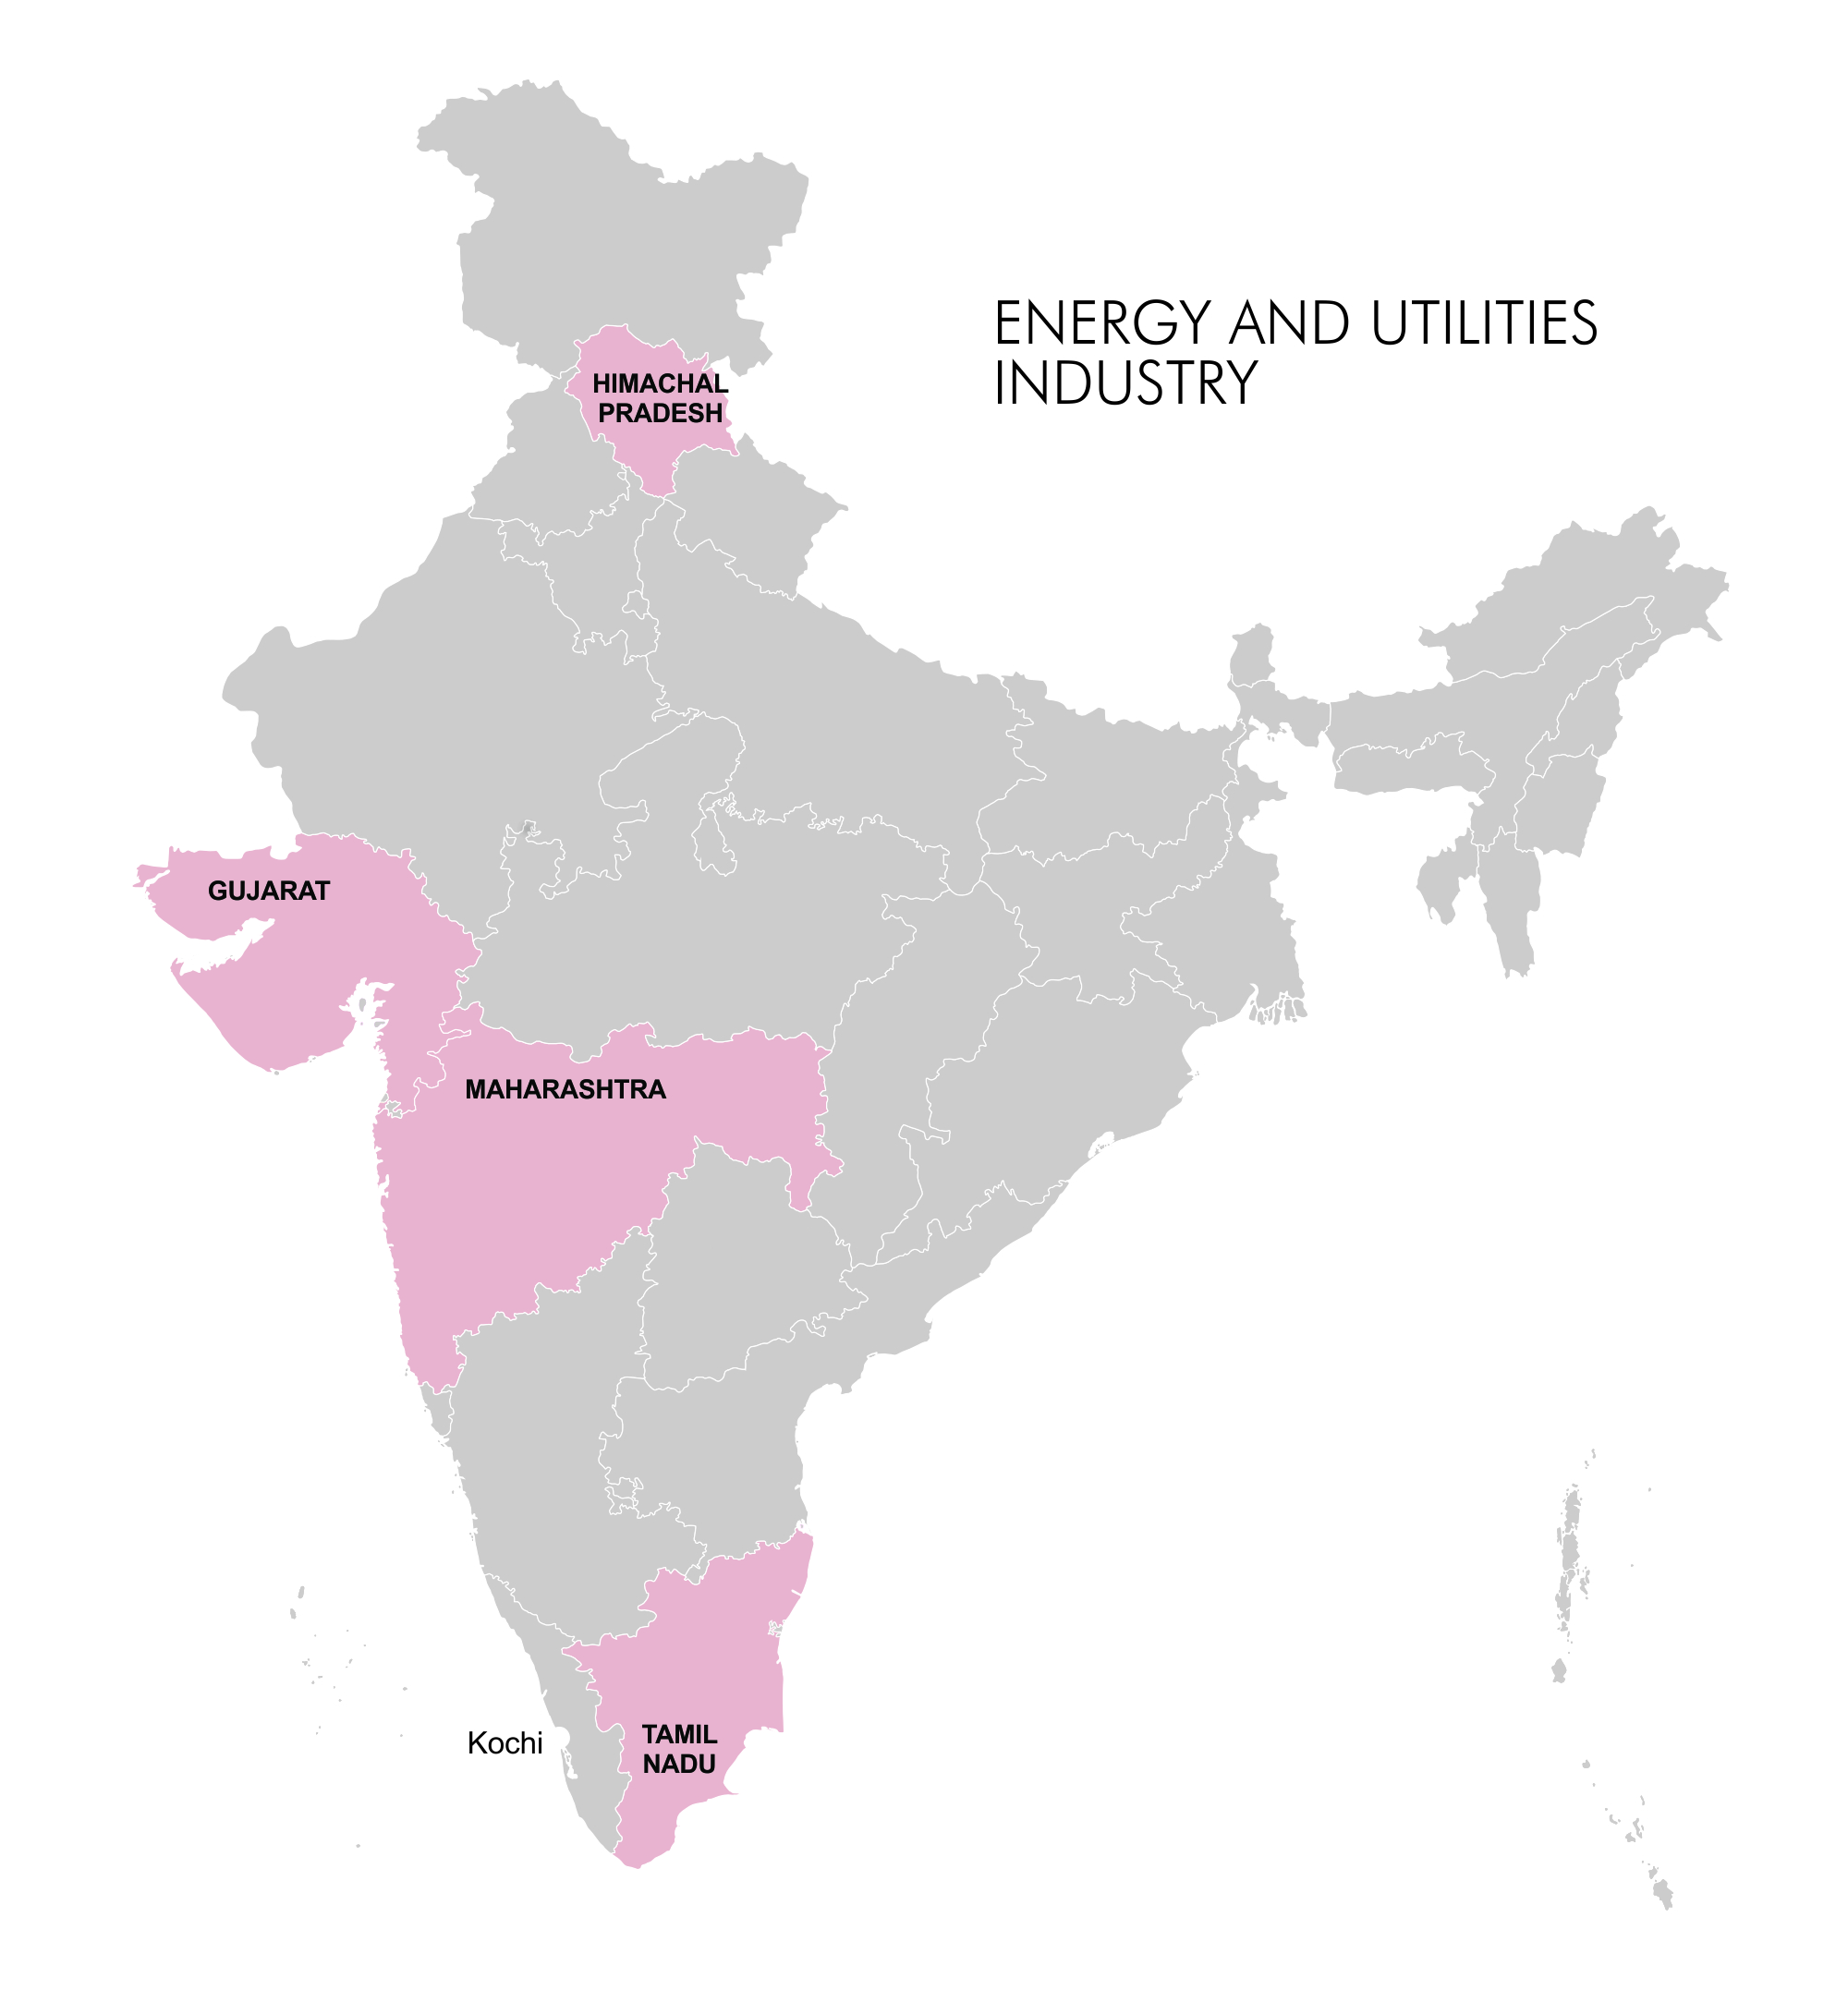 Map - Industry Clusters: Energy and Utilities